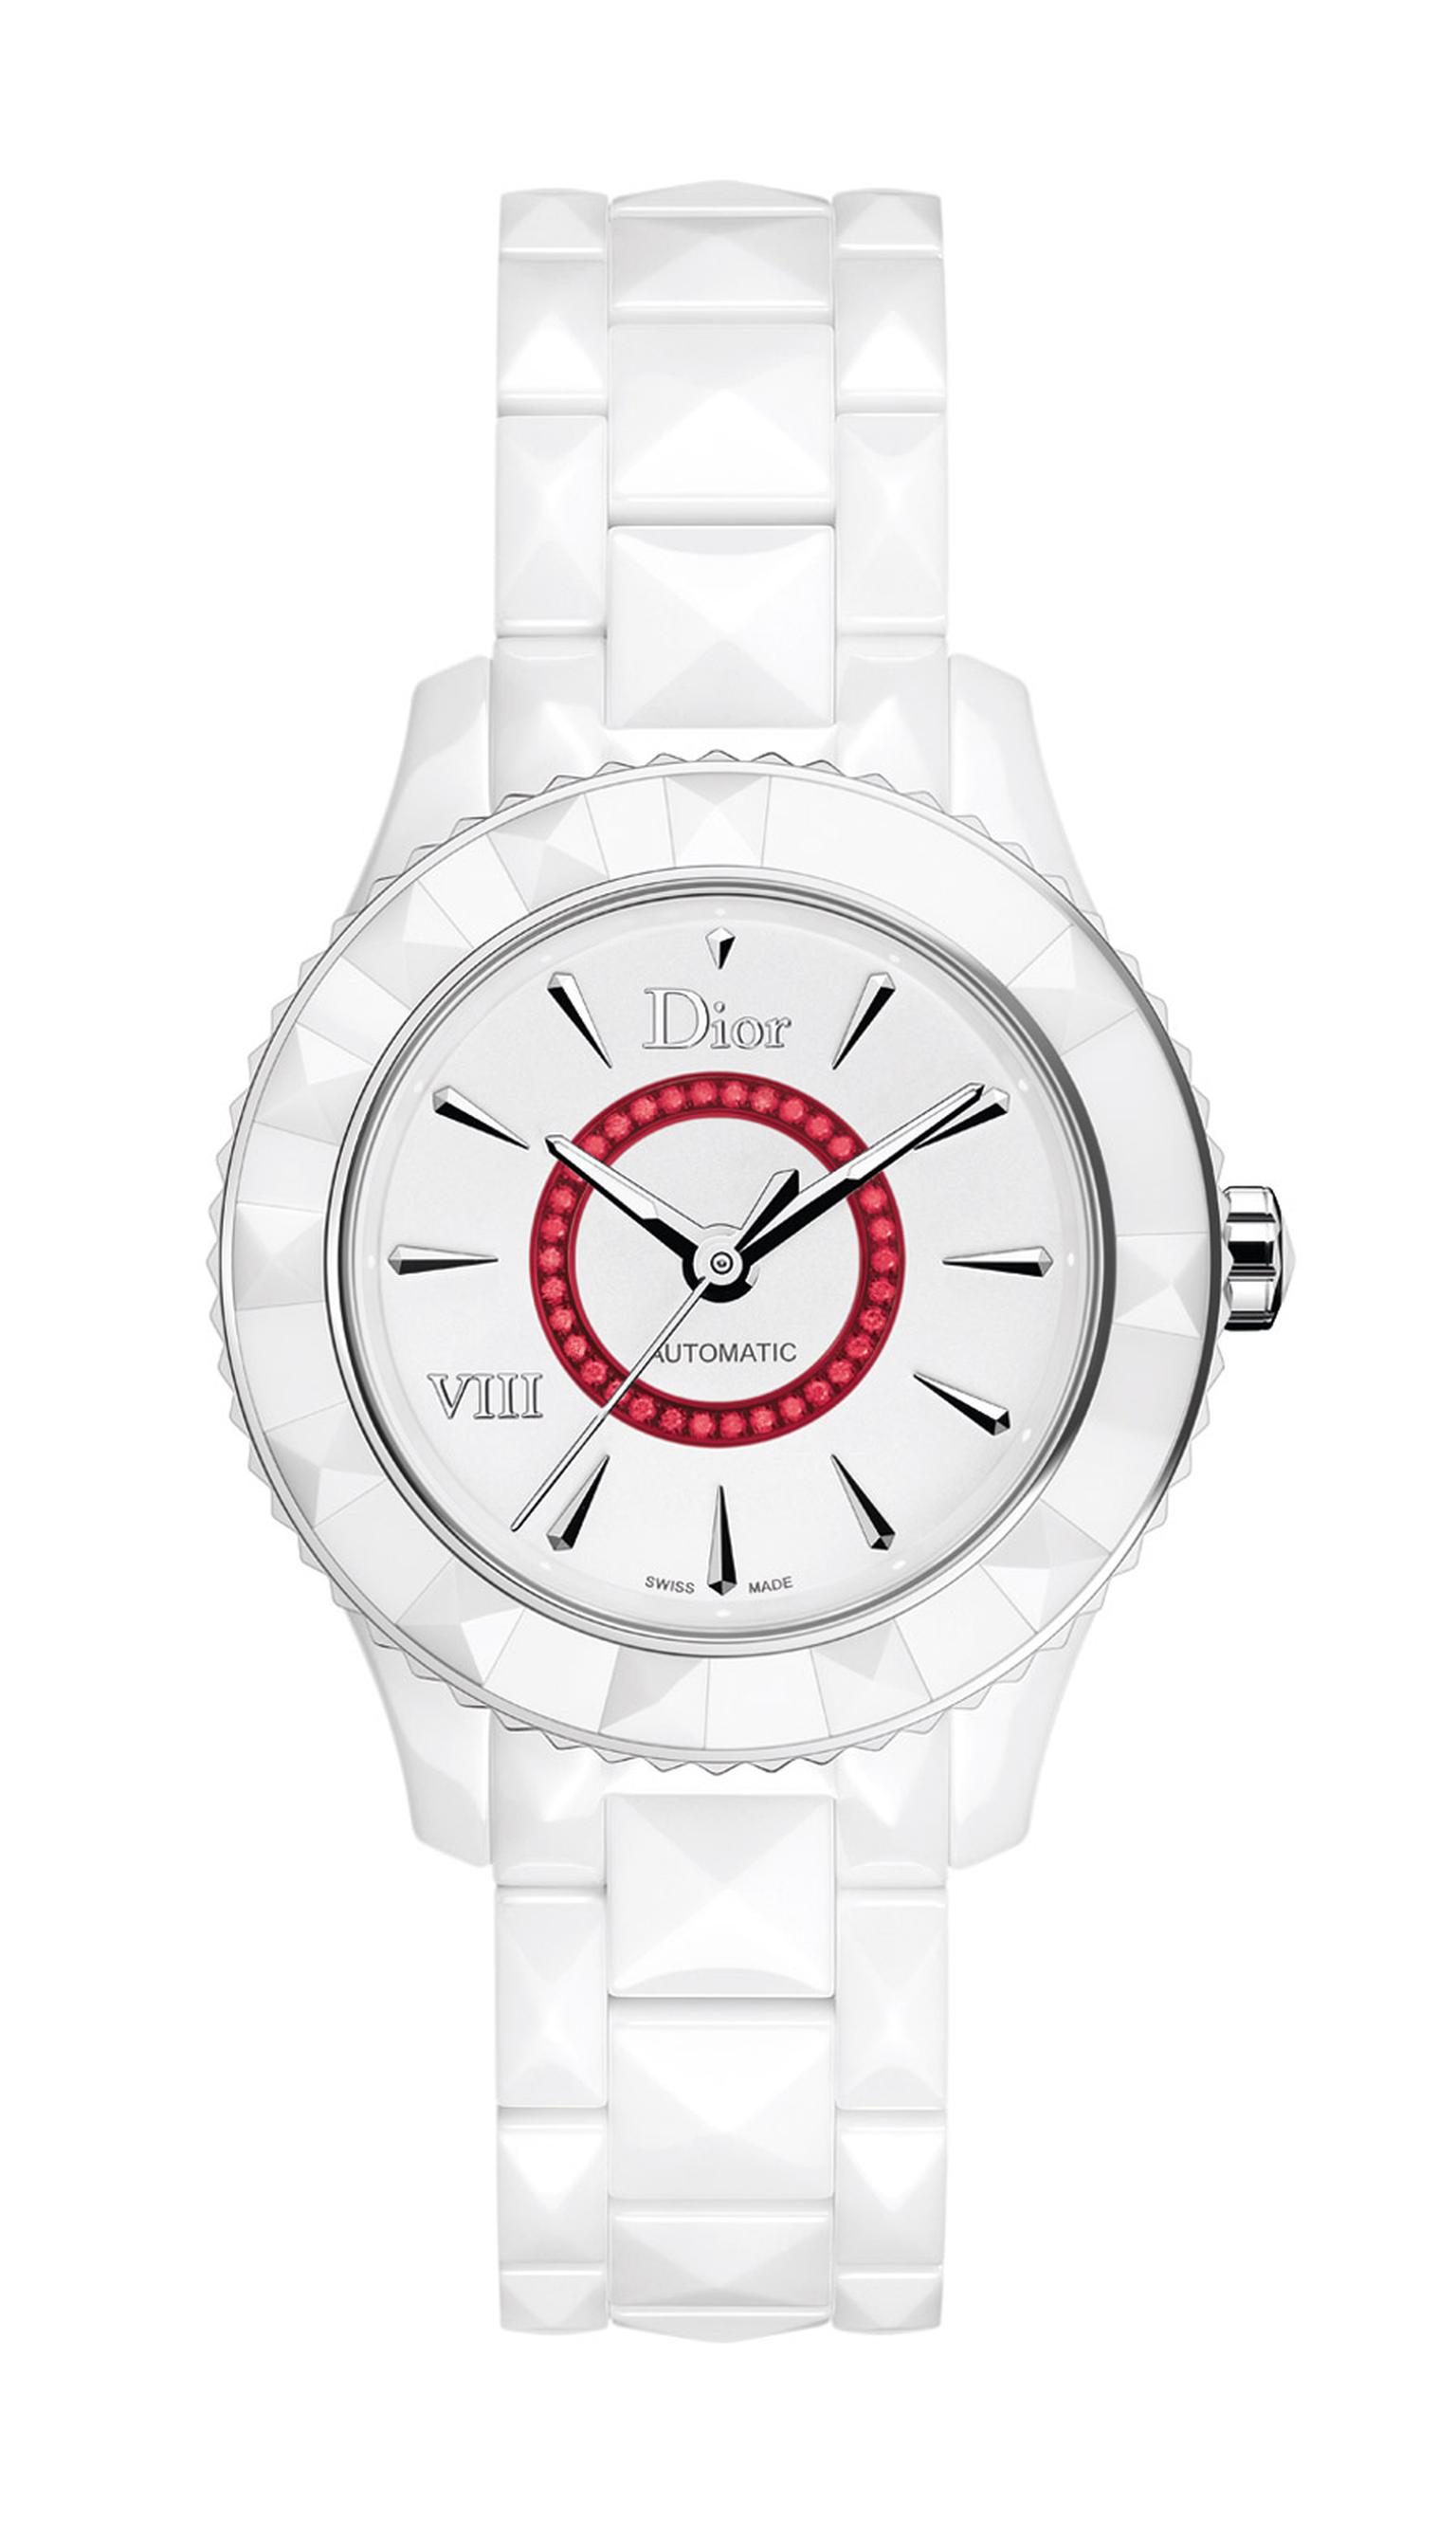 DIOR-VIII-WHITE-AUTO-COLOURED-CIRCLE-DIAL-RUBY-38mm